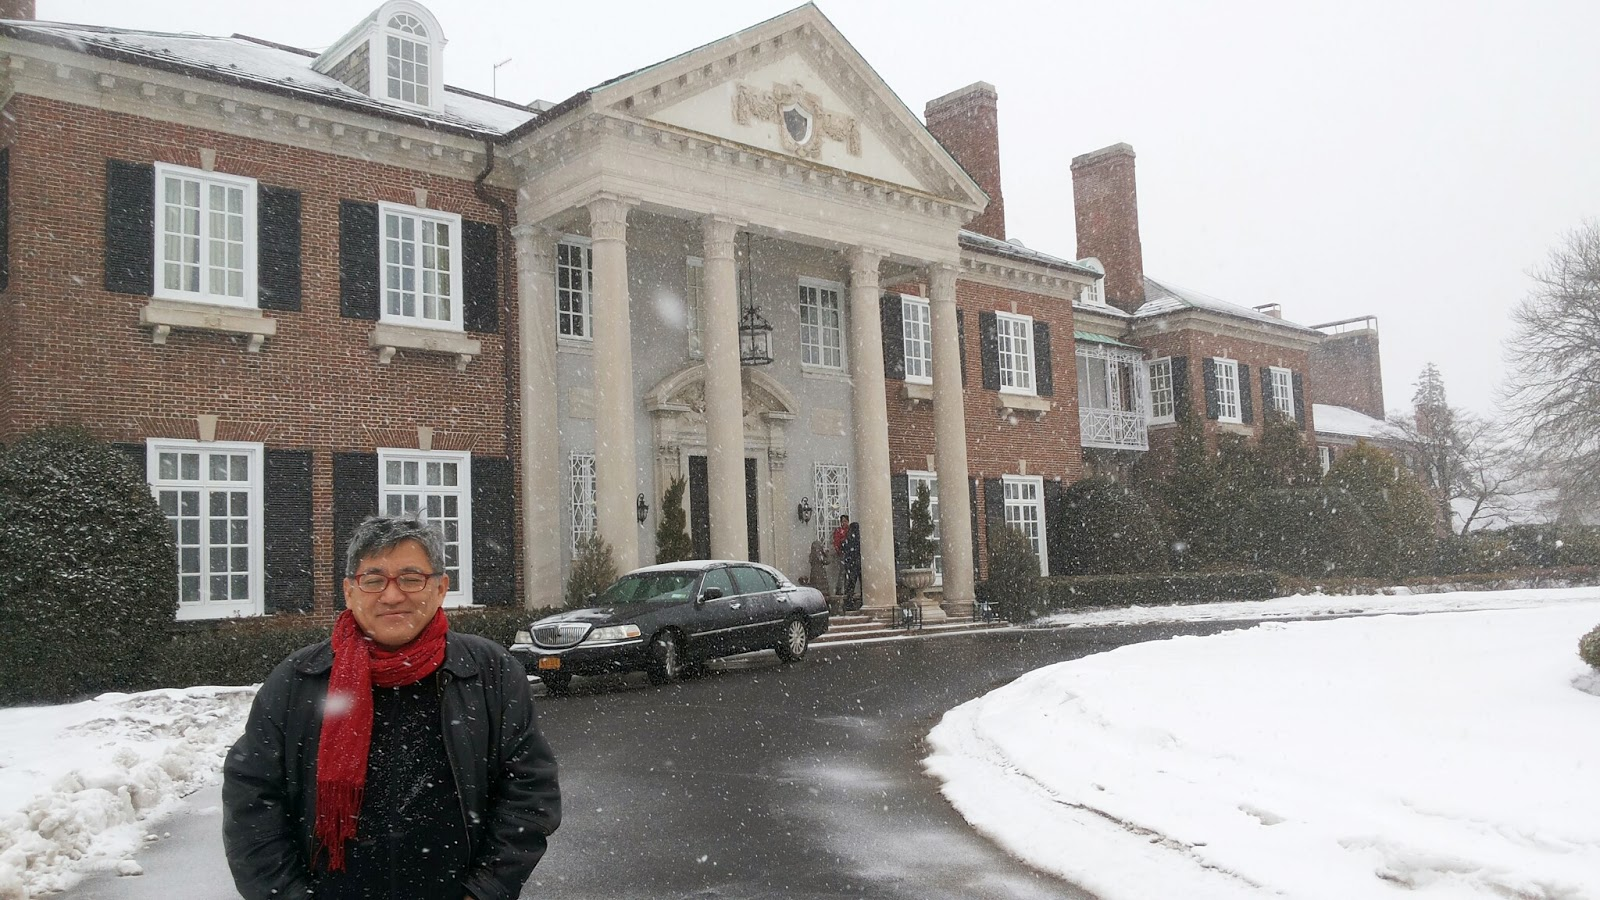 glen cove muslim The mansion was built in the town of glen cove in 1912 by  supreme court backs trump on travel ban targeting muslim  ©2018 public radio international.